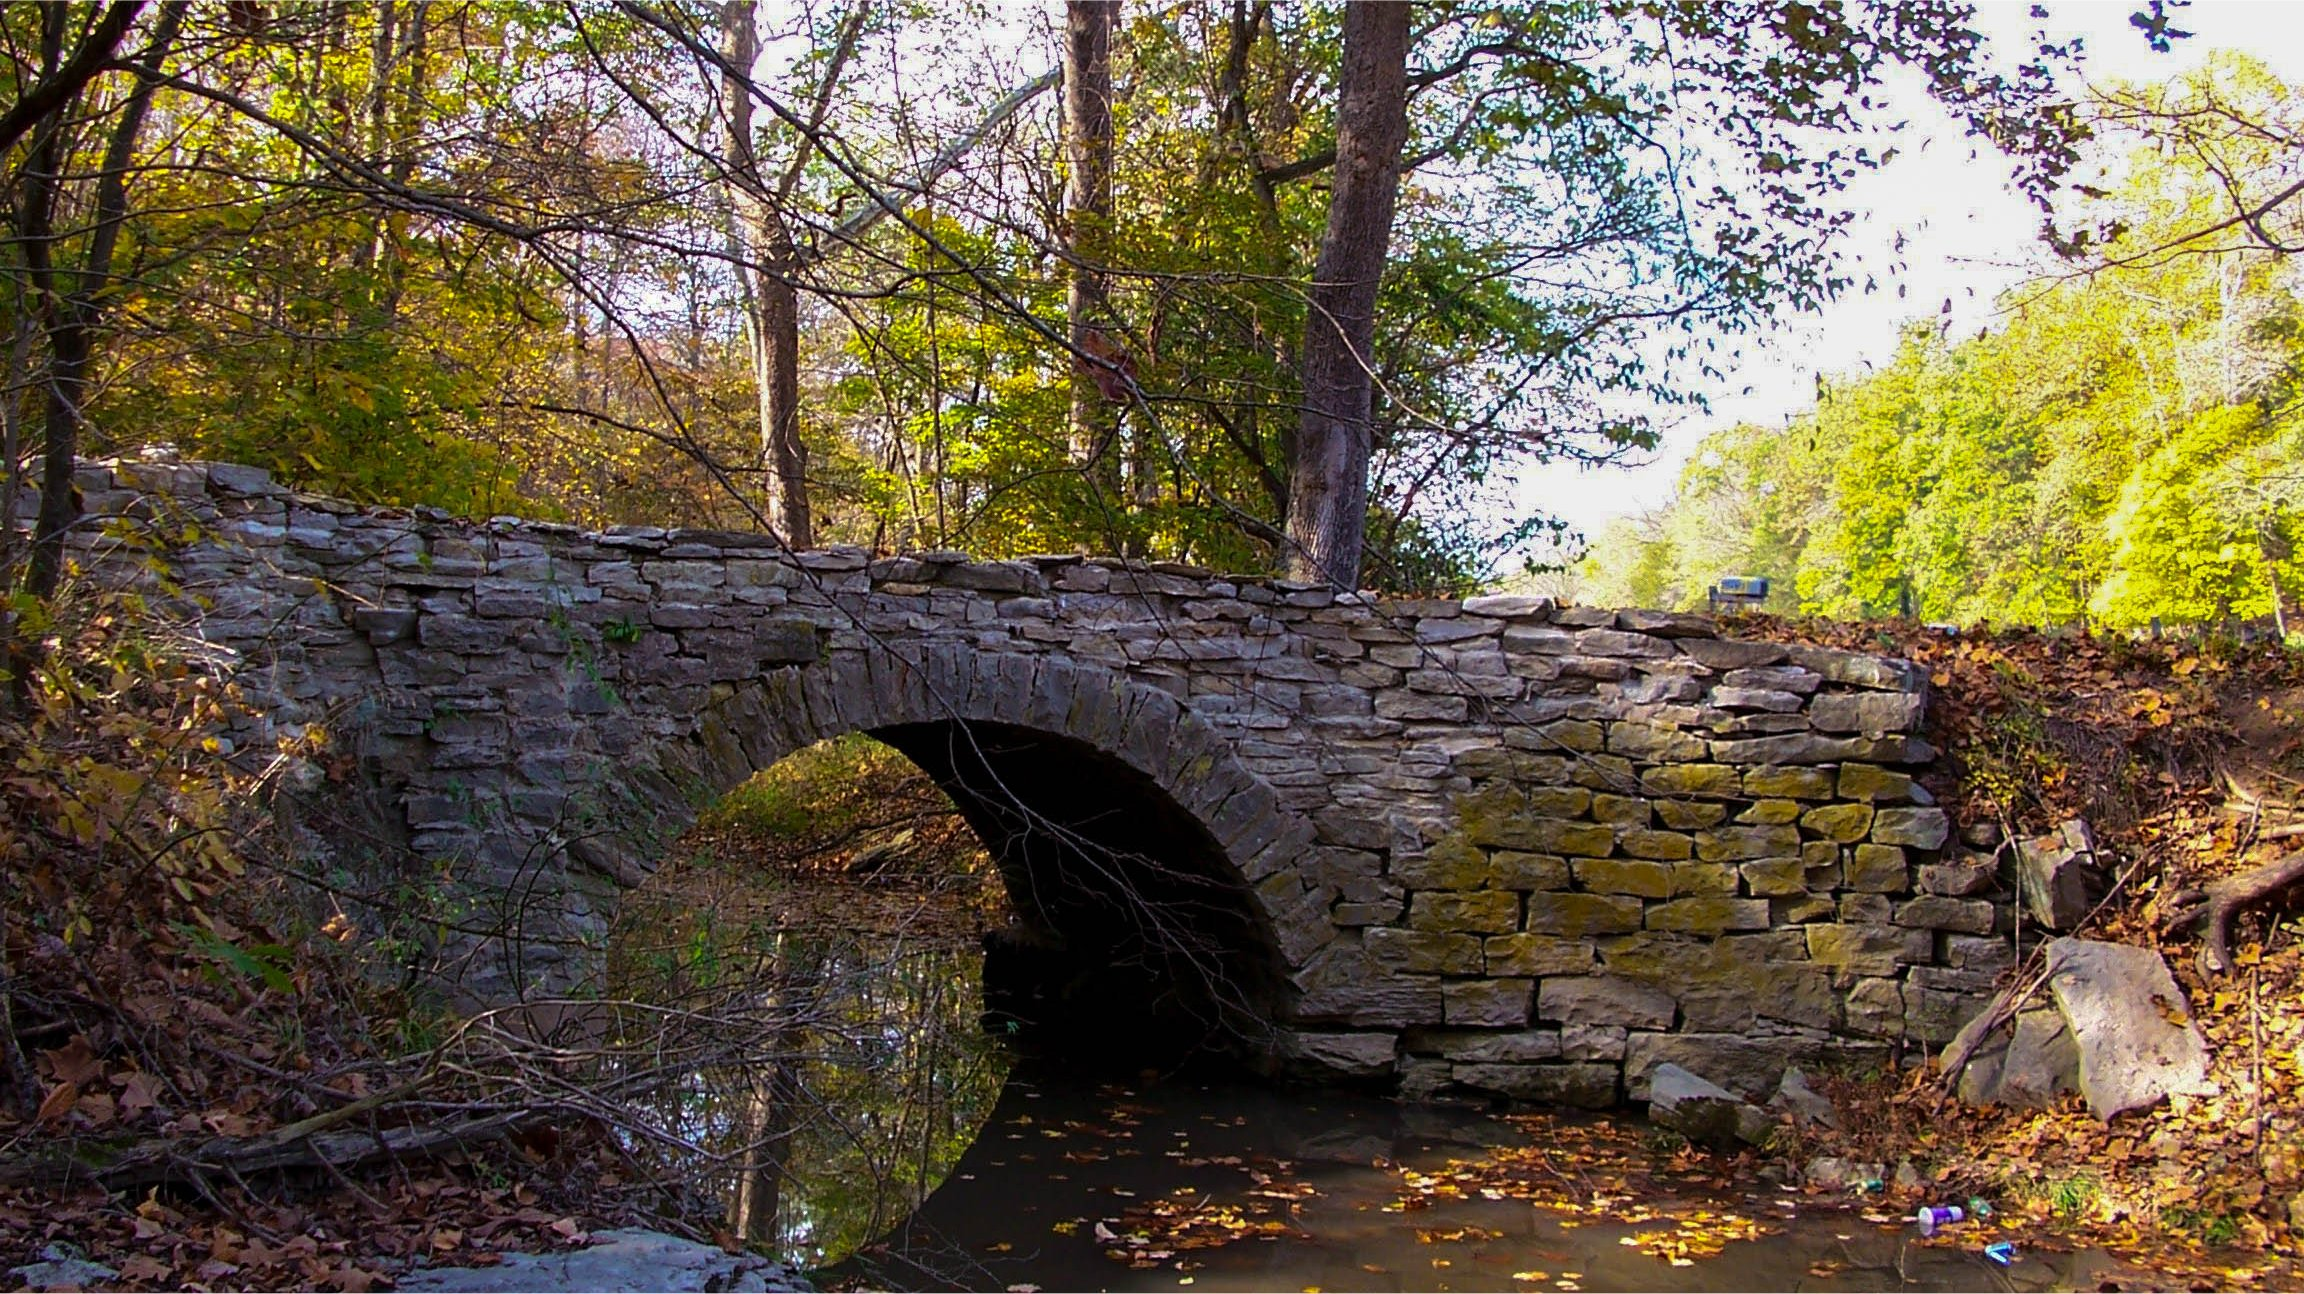 Stone Bridges Monroe County, Illinois